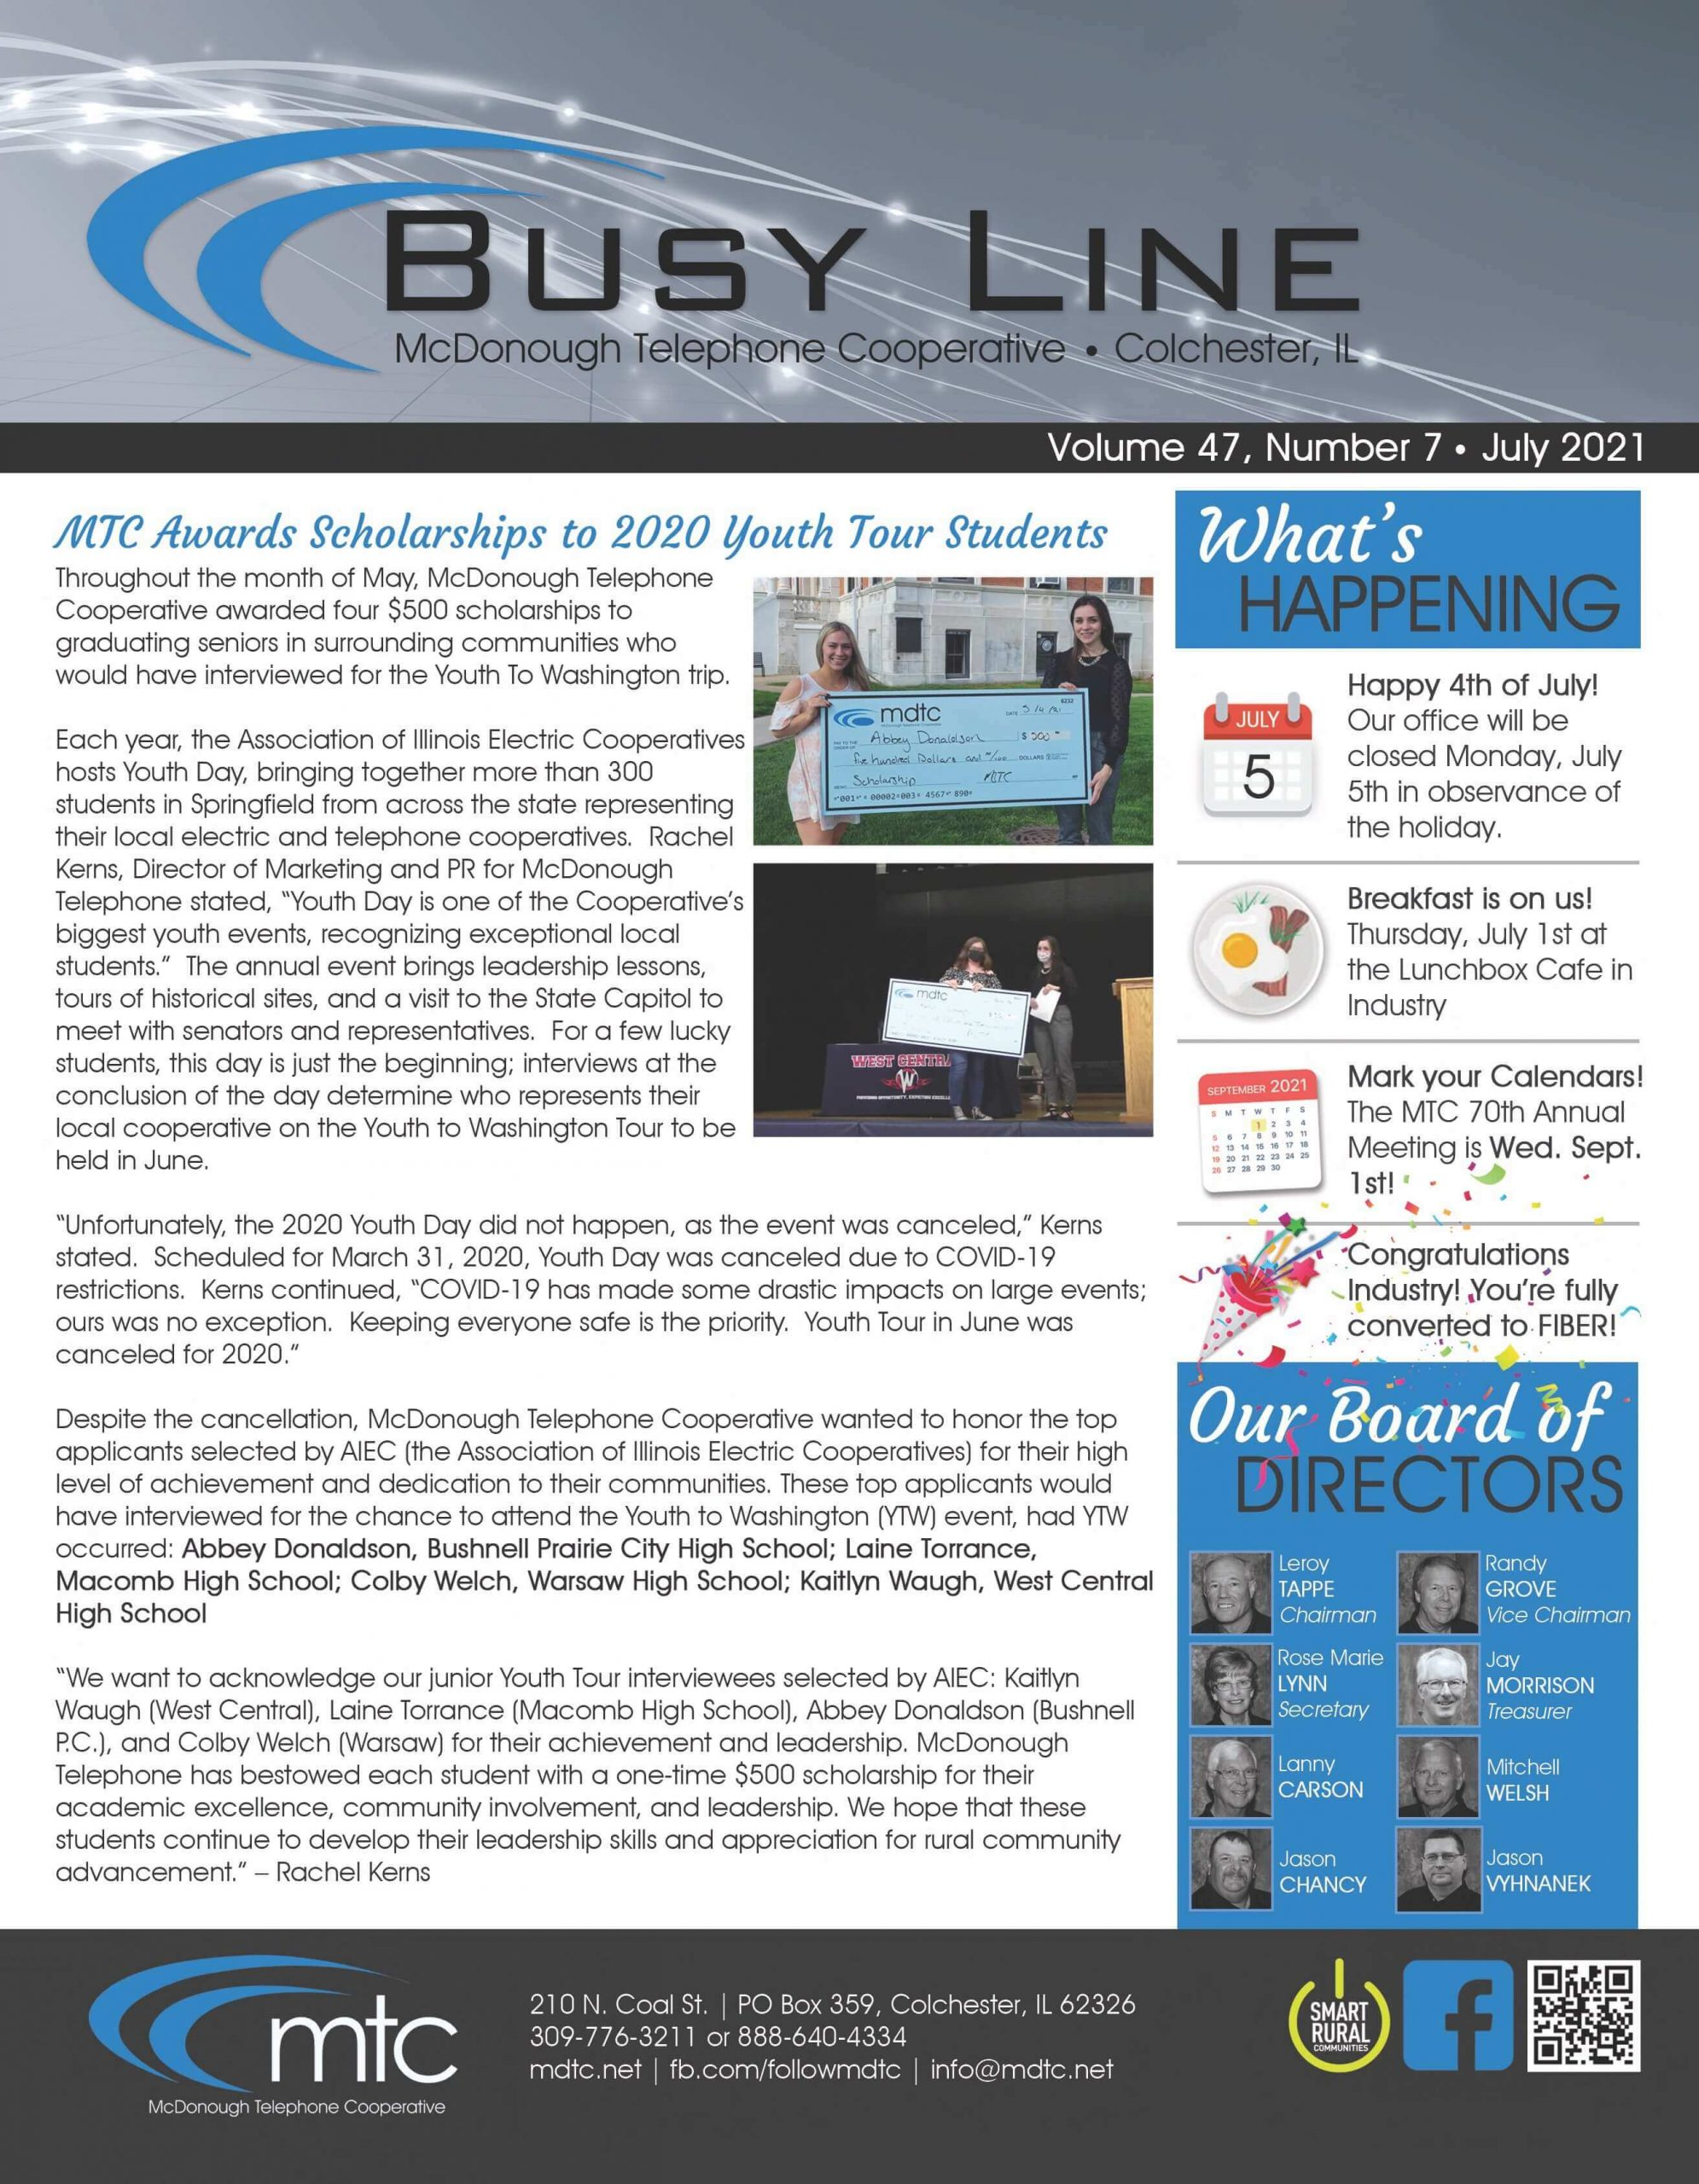 July 21 Busy line